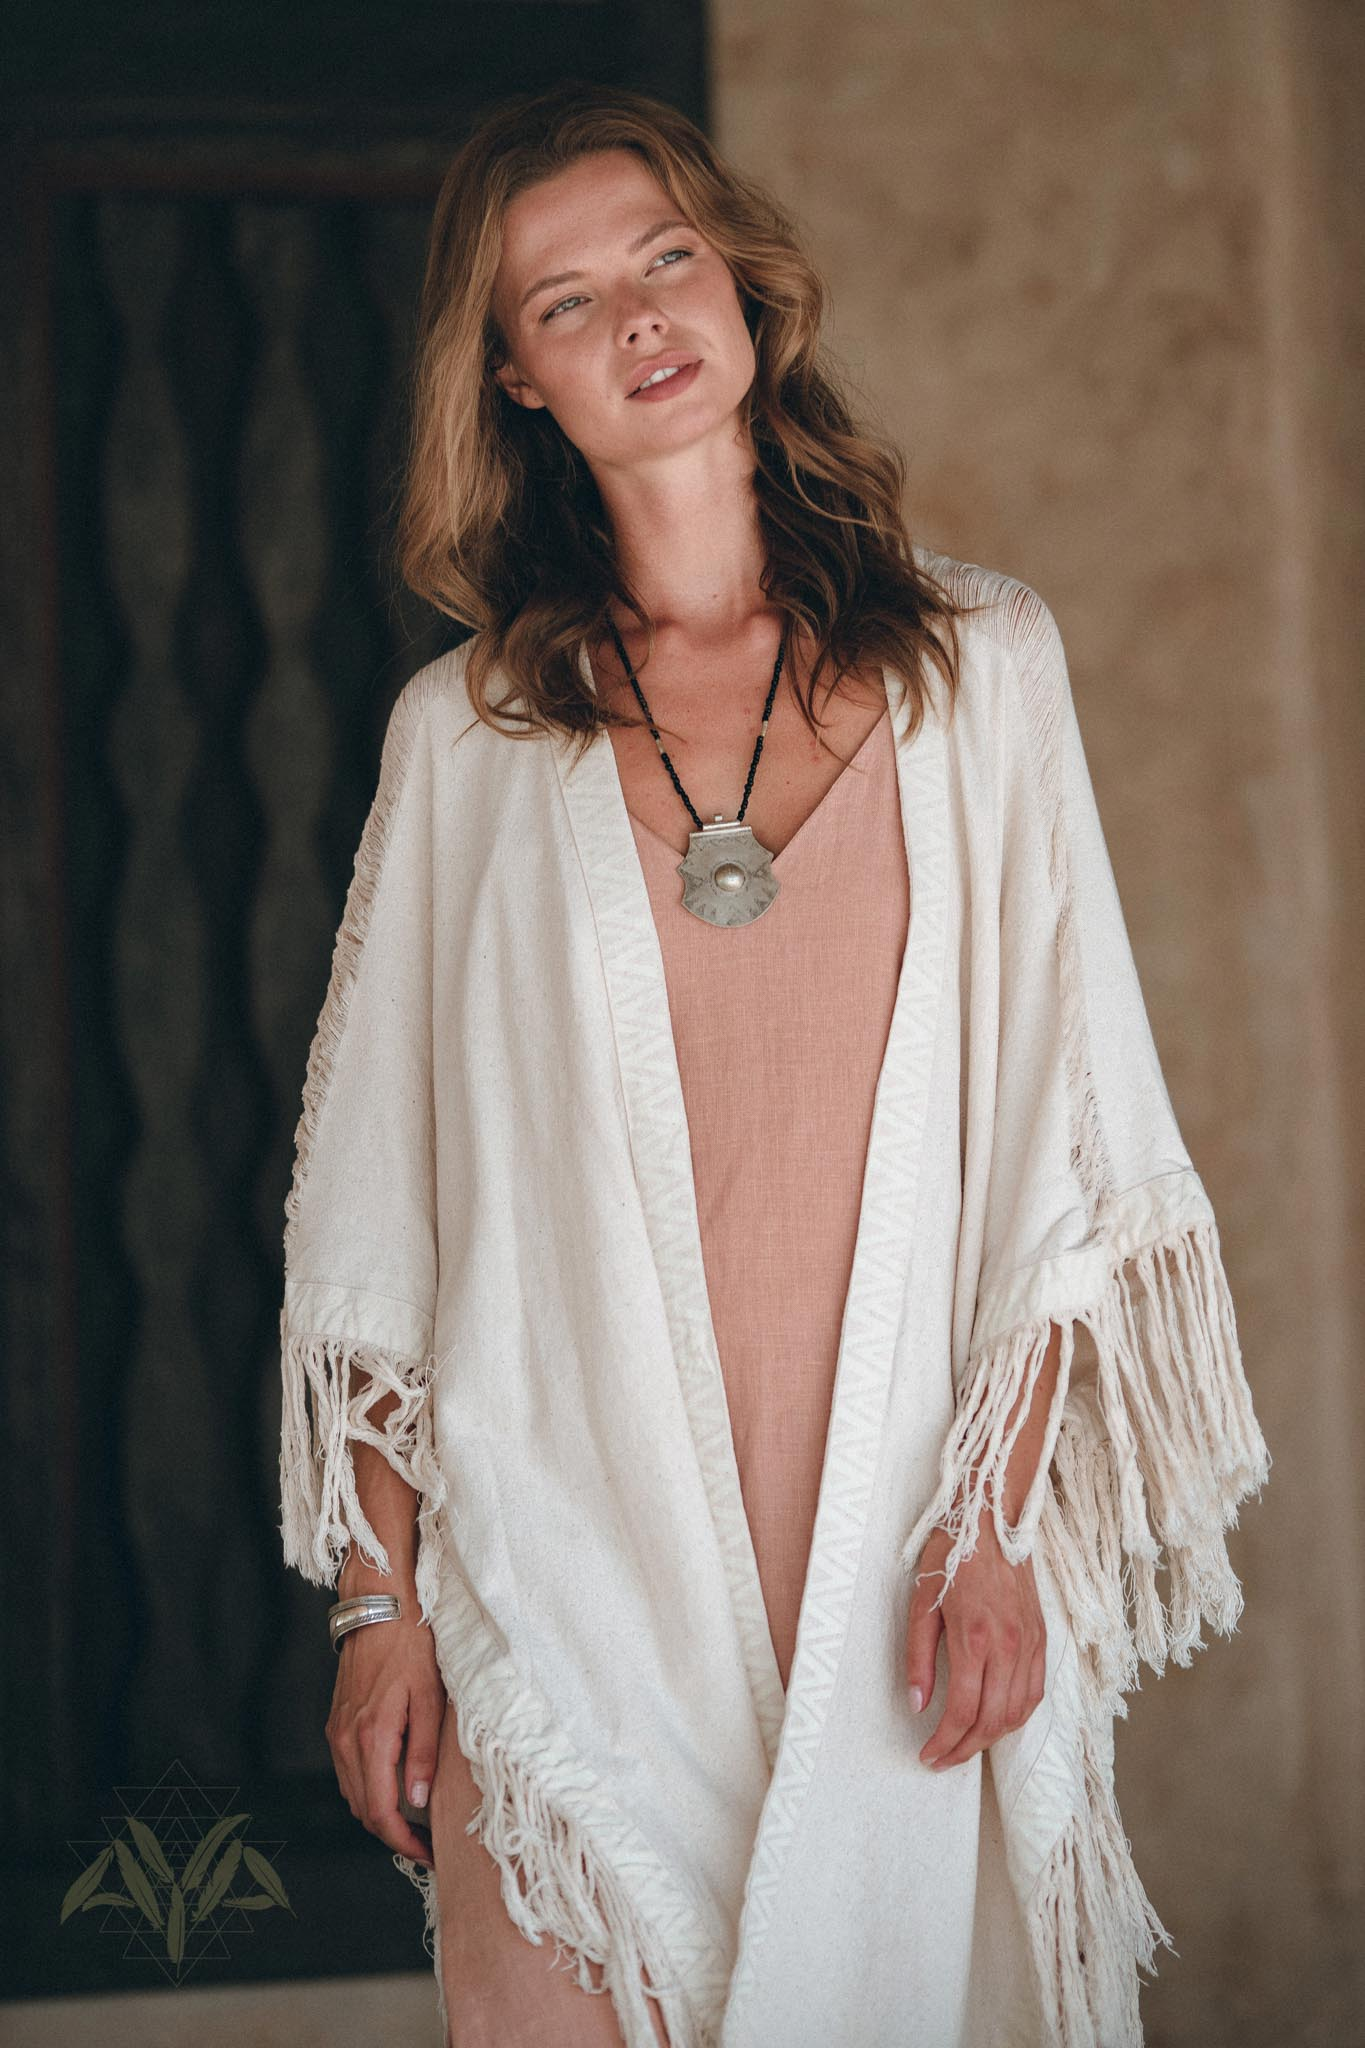 Off-White Cardigan • Boho Poncho Women Fringed • Wide Sleeve Women Cardigan - aya.eco